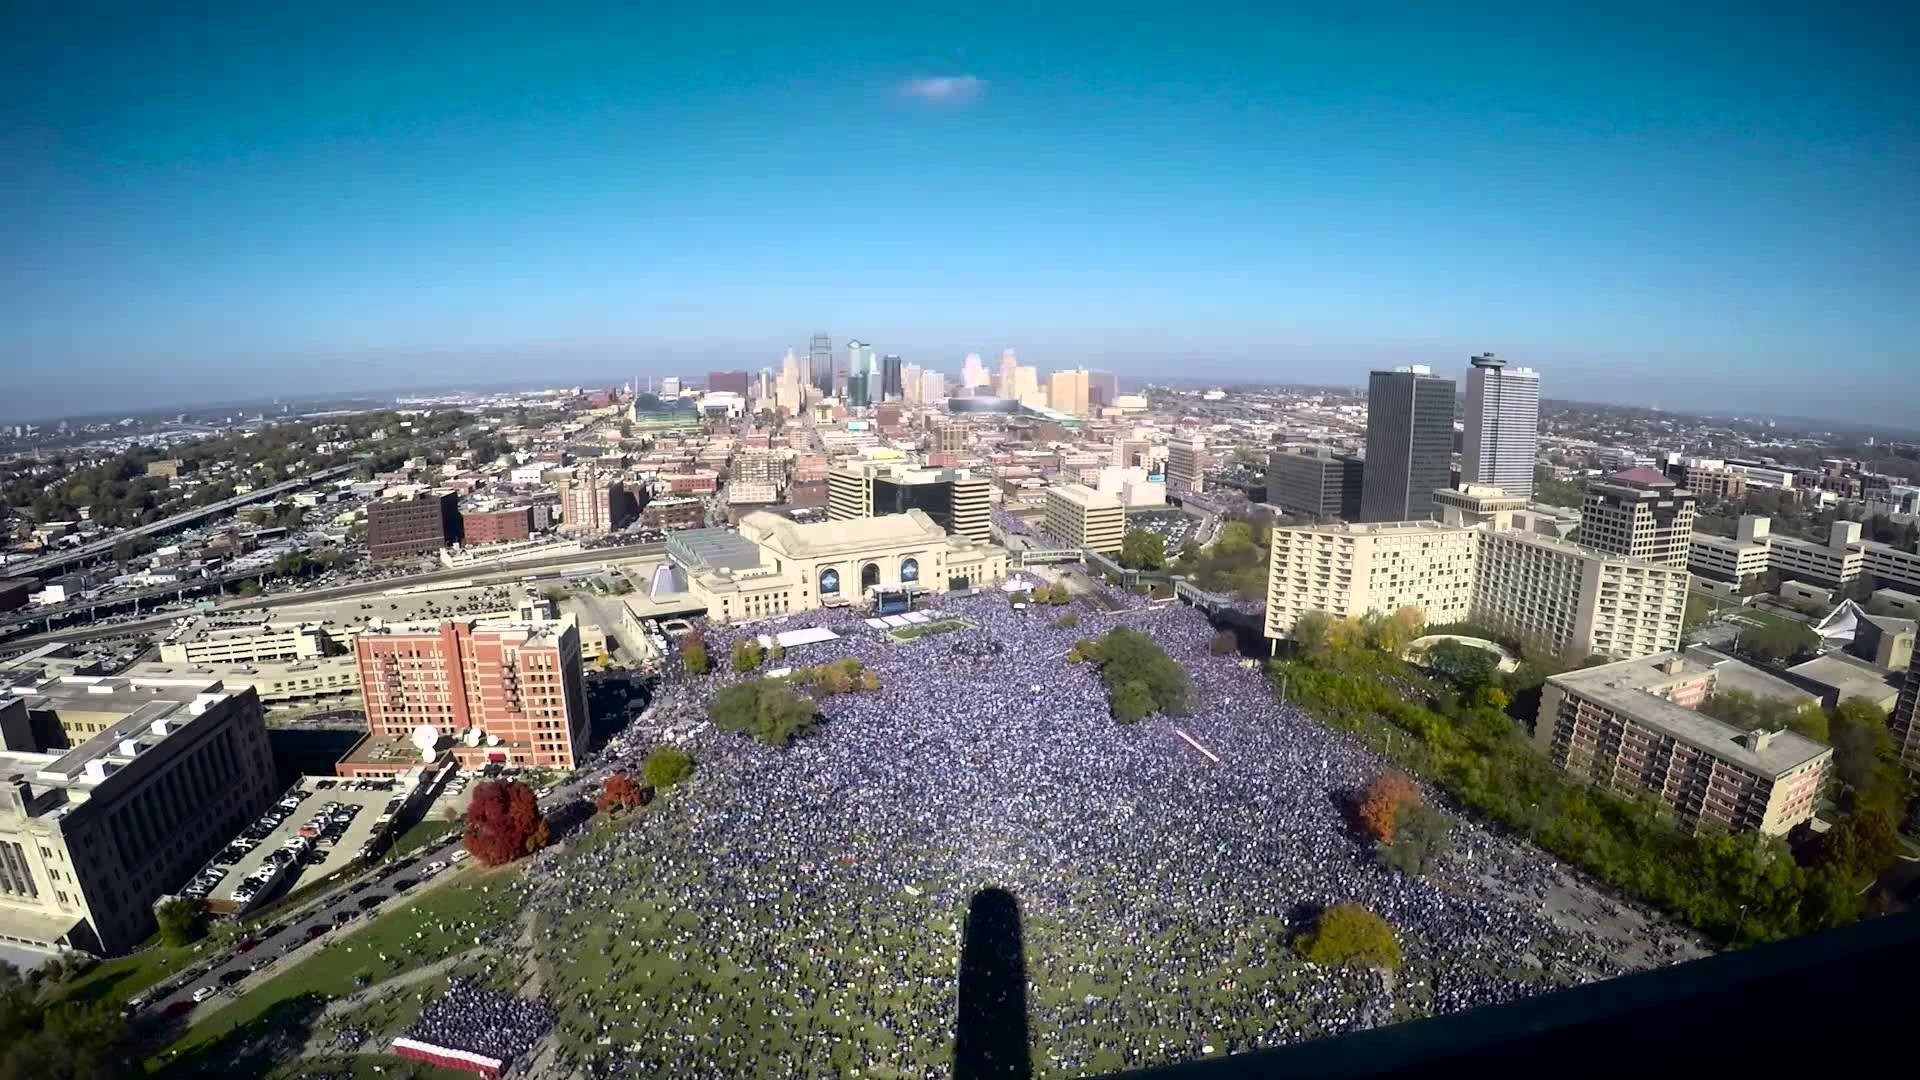 1920x1080 Kansas City Royals World Series Party from the Liberty Memorial - YouTube